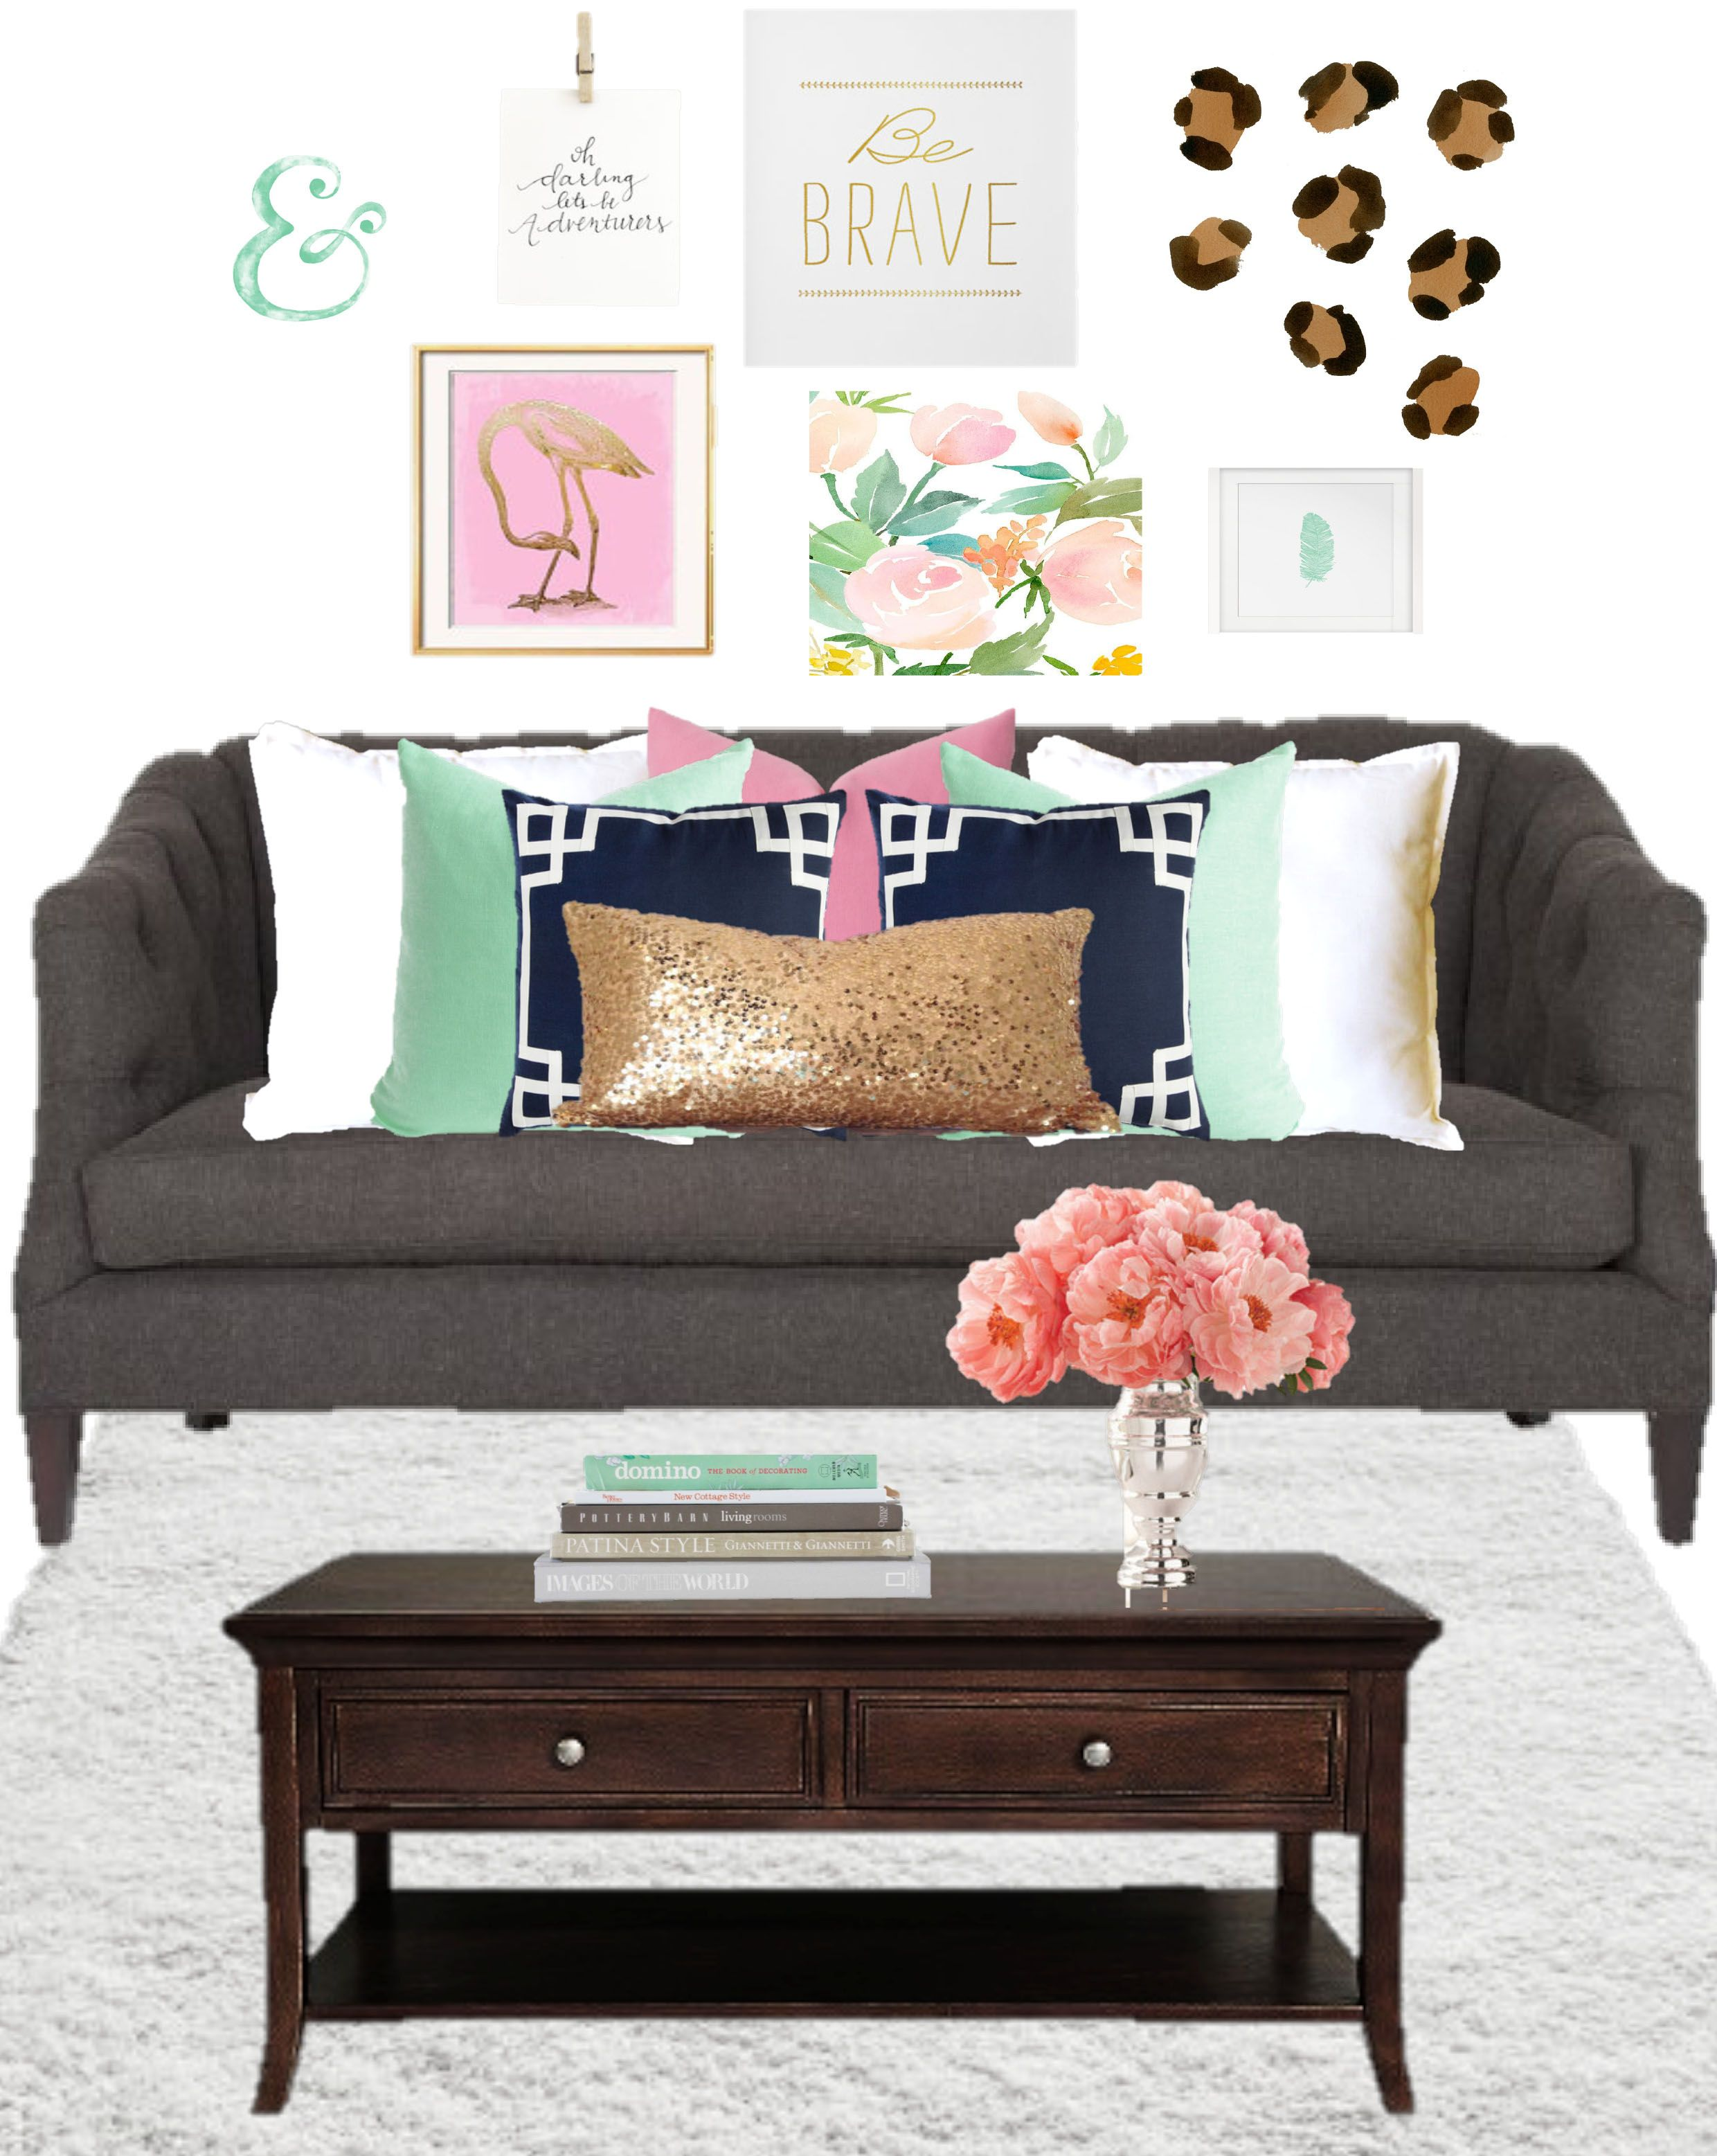 Birch Grove Interiors, Grey couch, pastel home decor, gold sequin pillow, pink peonies, floral wall art, gallery wall, mint green and pink pillows